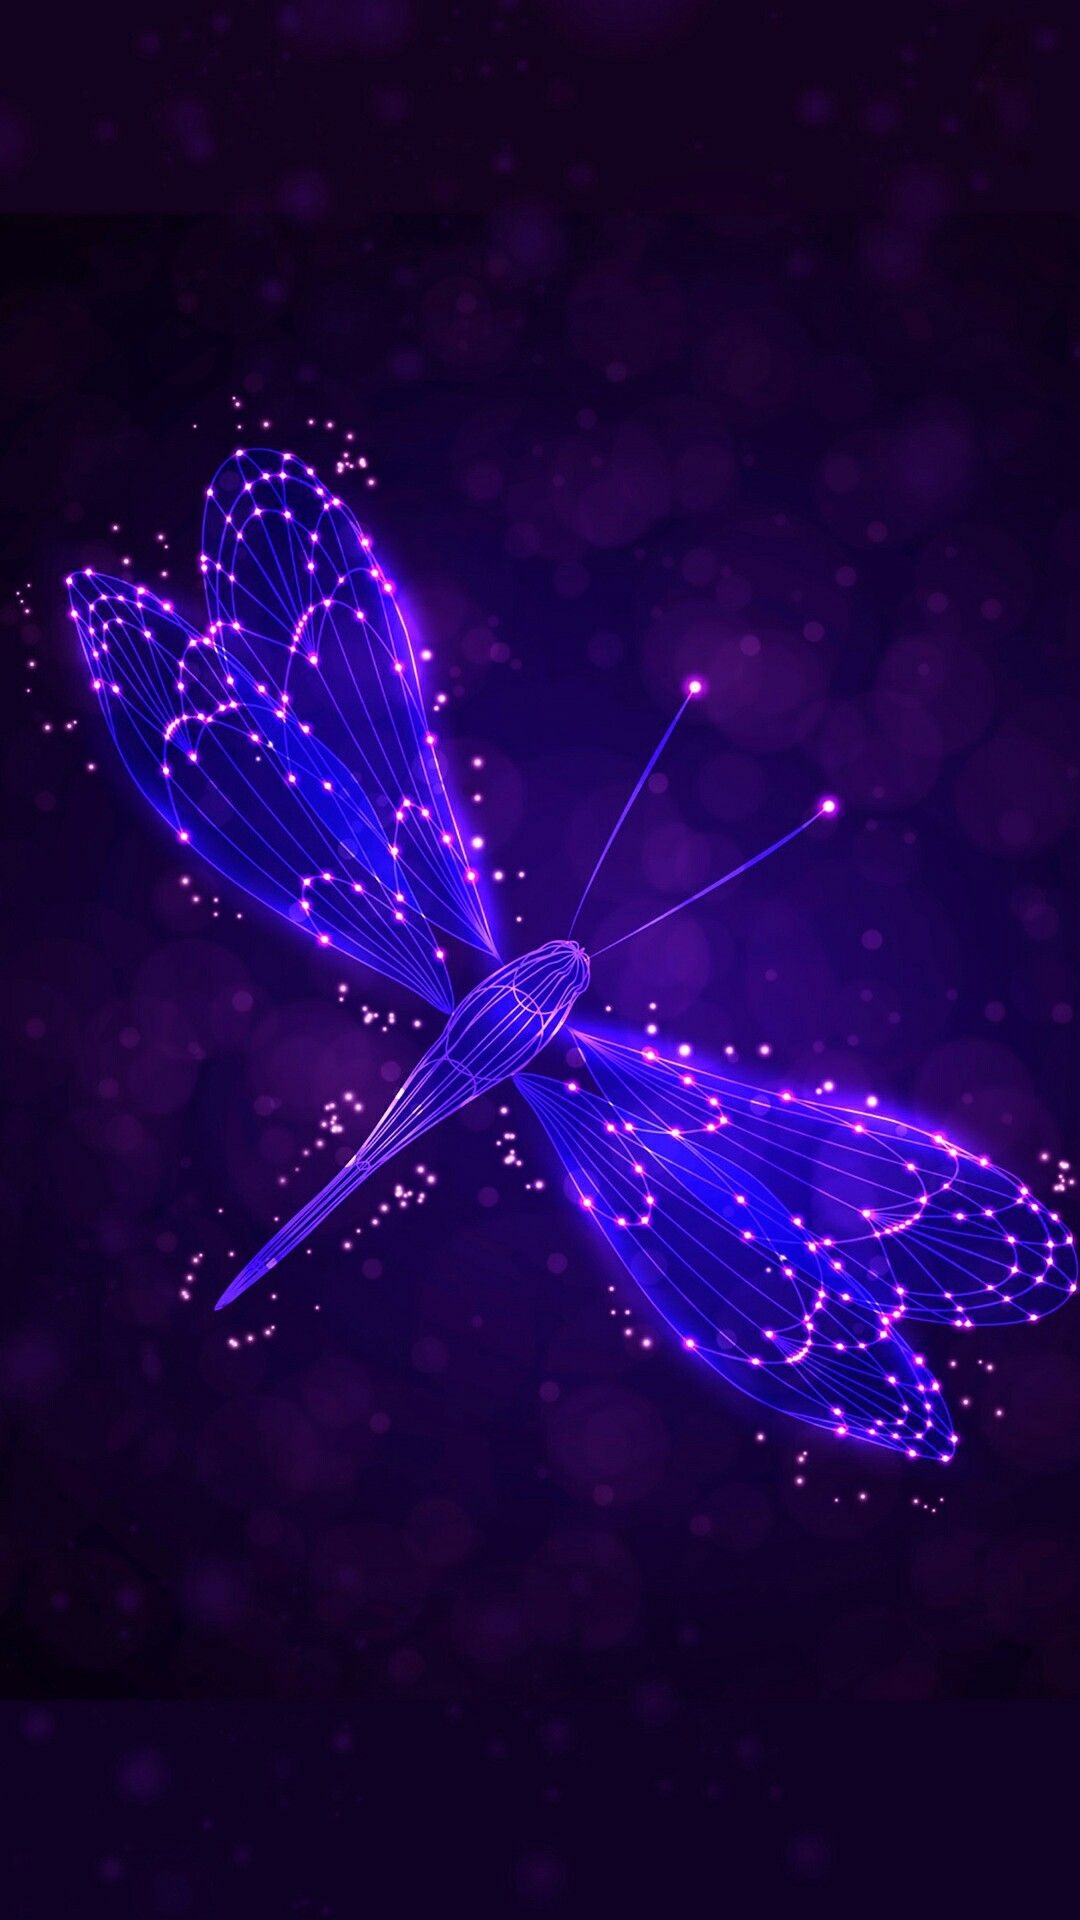 Pin By Ana Beatriz On Dragonflies Butterfly Wallpaper Backgr